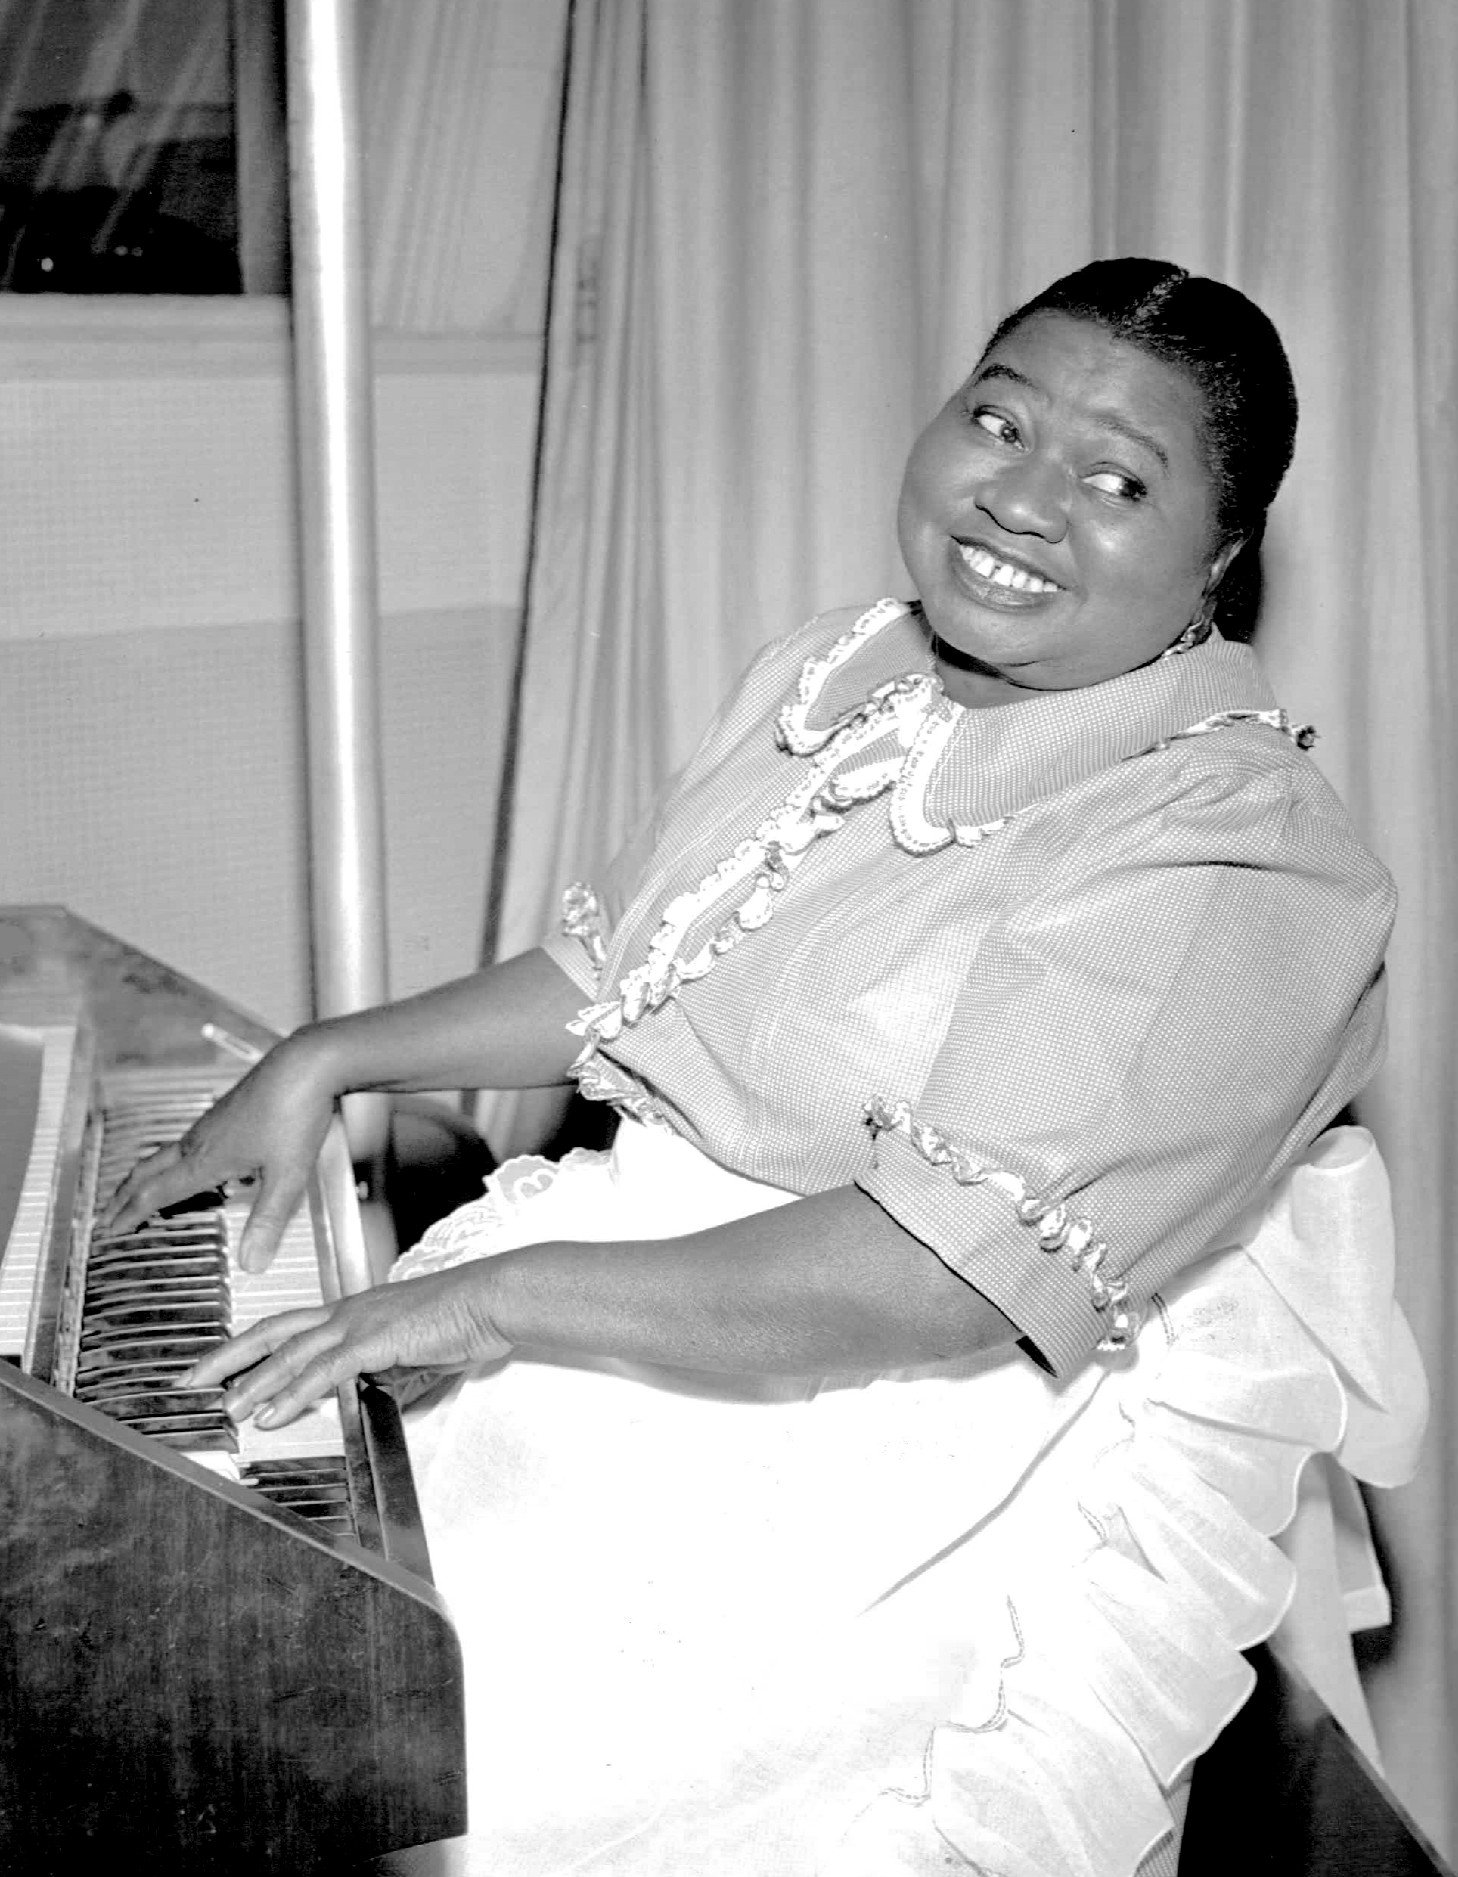 Hattie McDaniel as Beulah in 1951, the year before her death | Photo: Wikimedia Commons Images